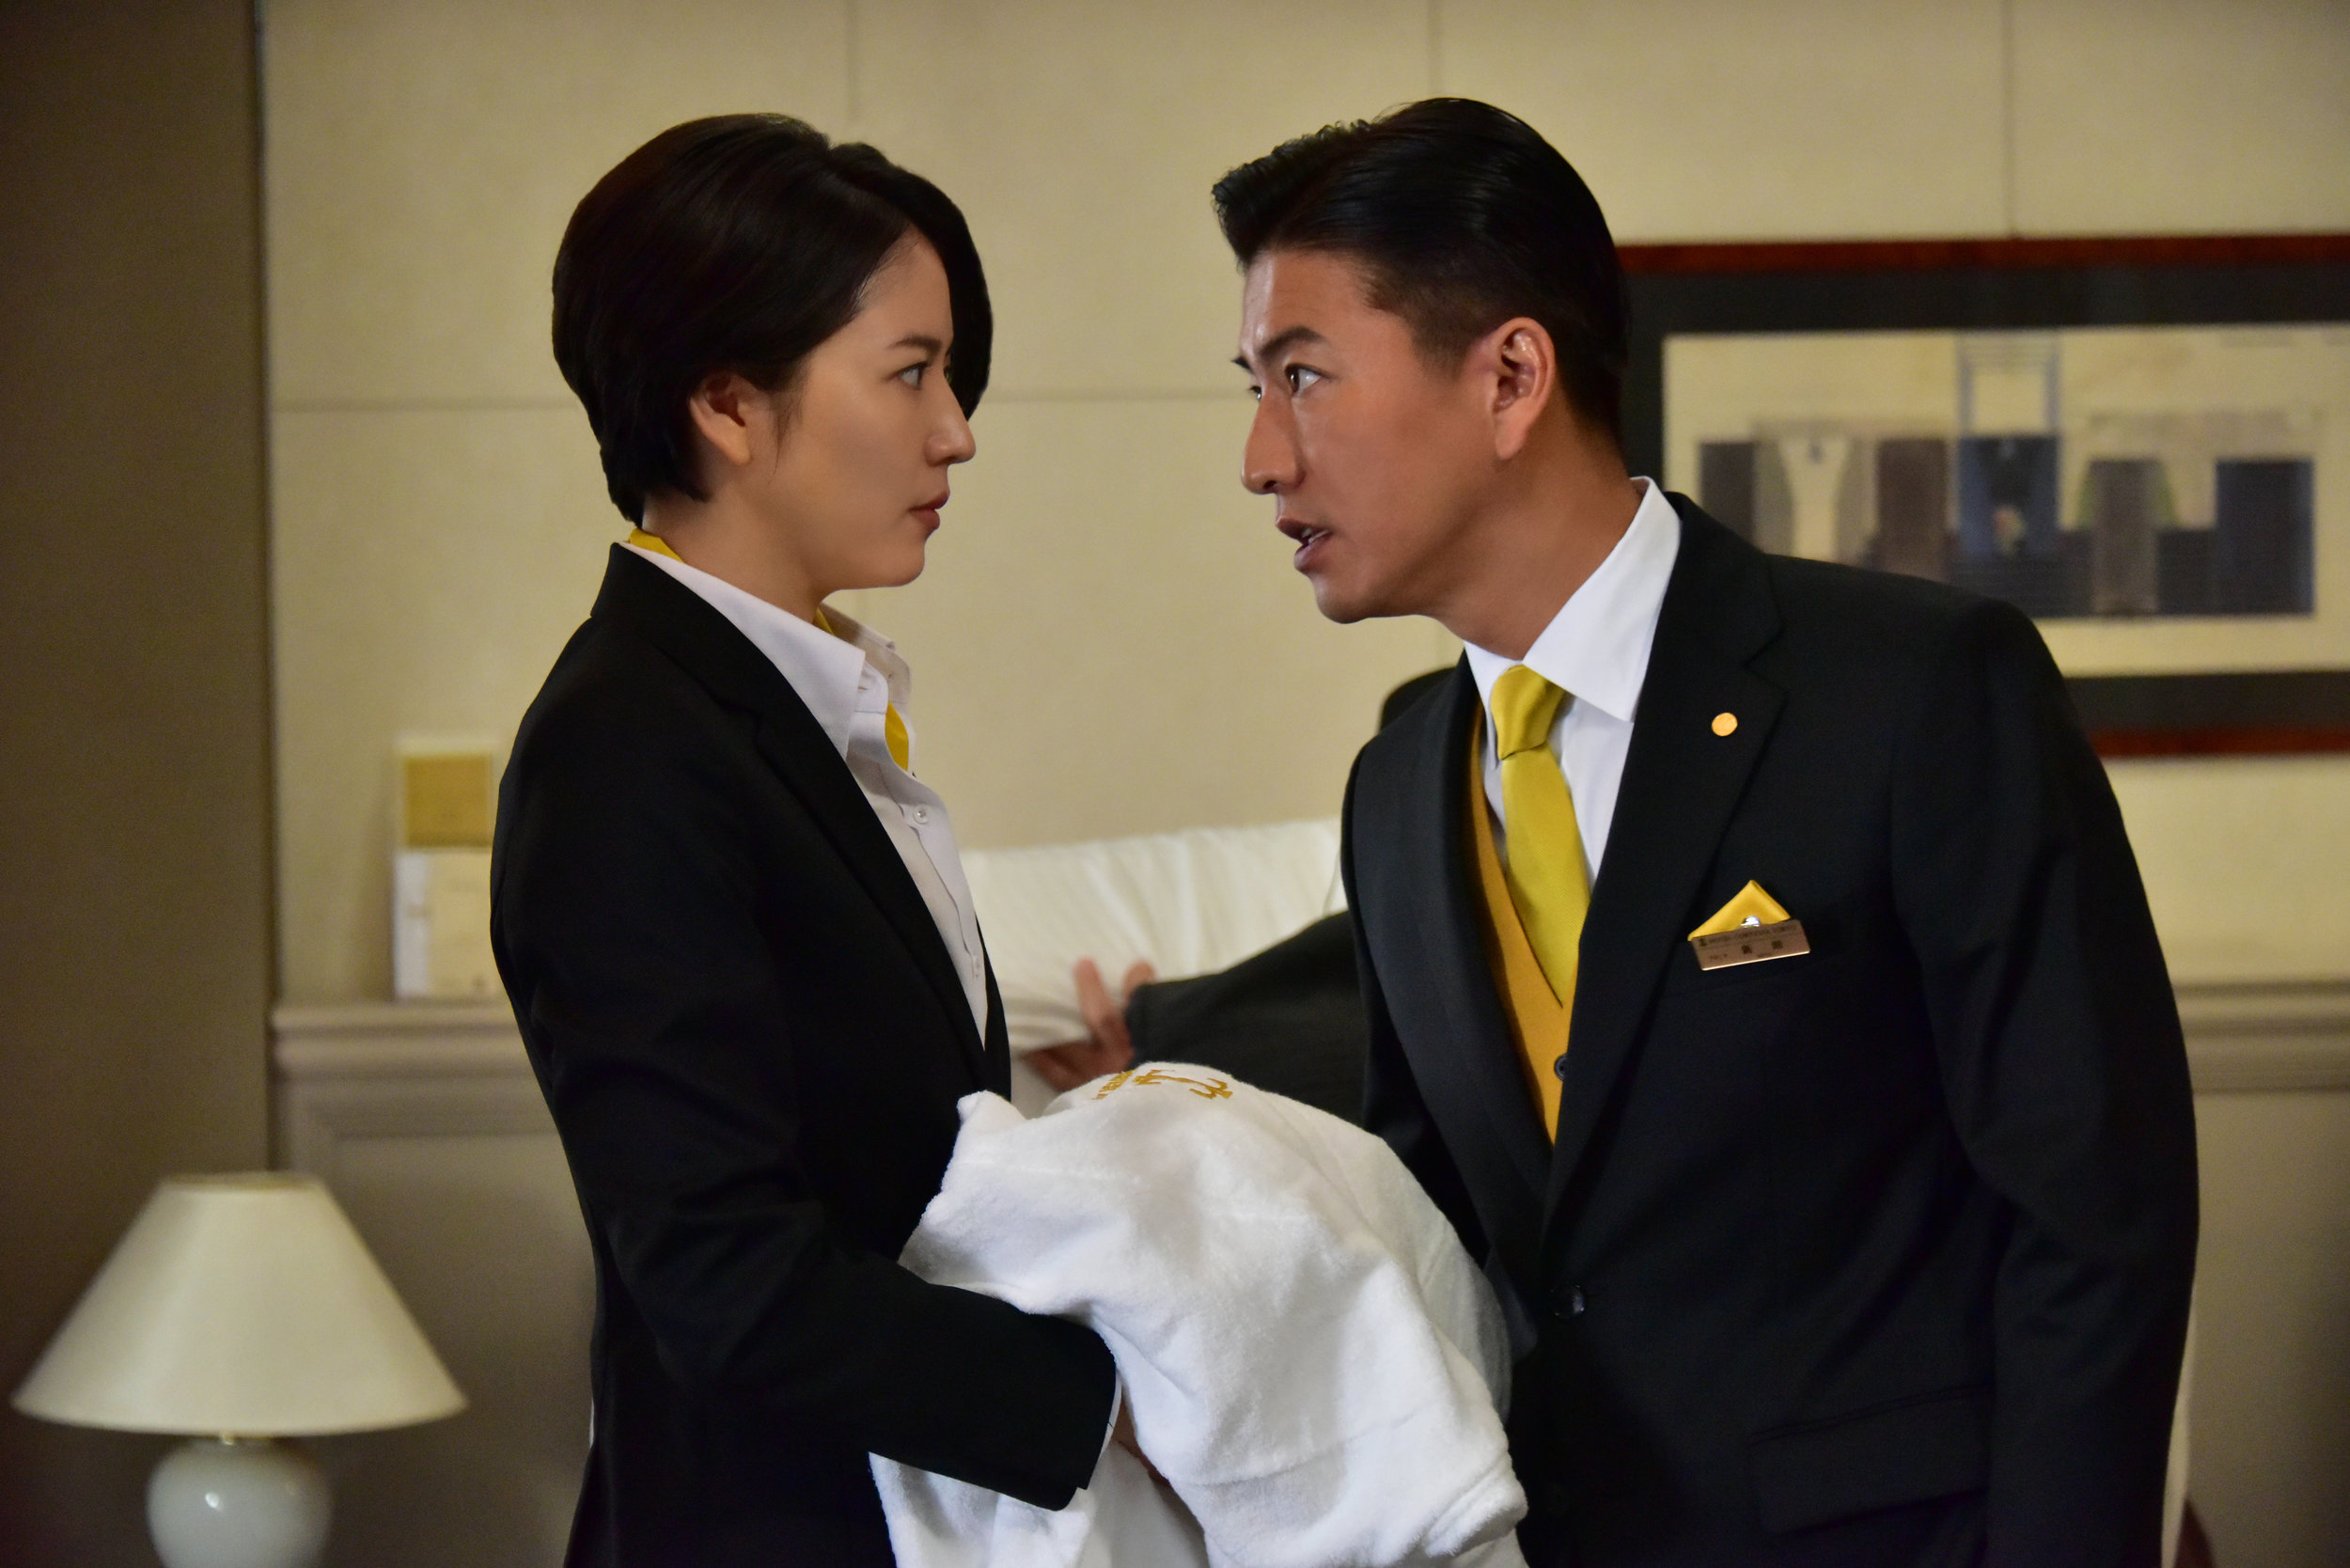 Hotelier Masami Nagasawa and undercover cop Takuya Timura crime-solve together in Masquerade Hotel